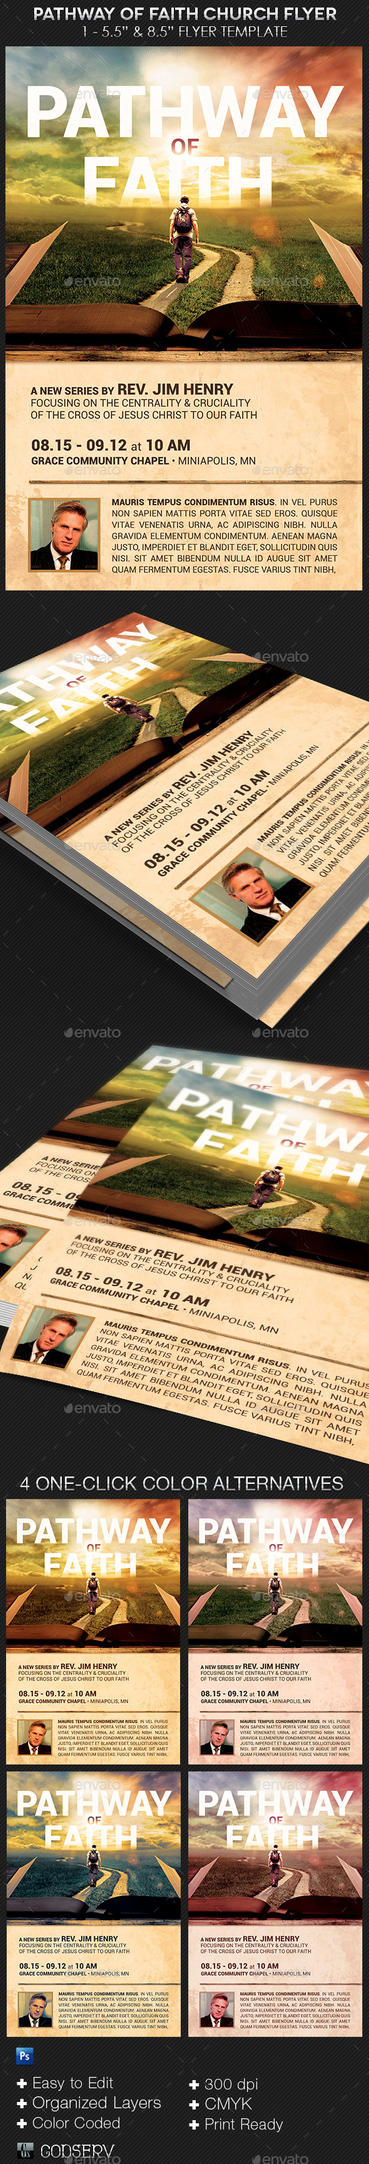 Pathway of Faith Church Flyer Template by Godserv